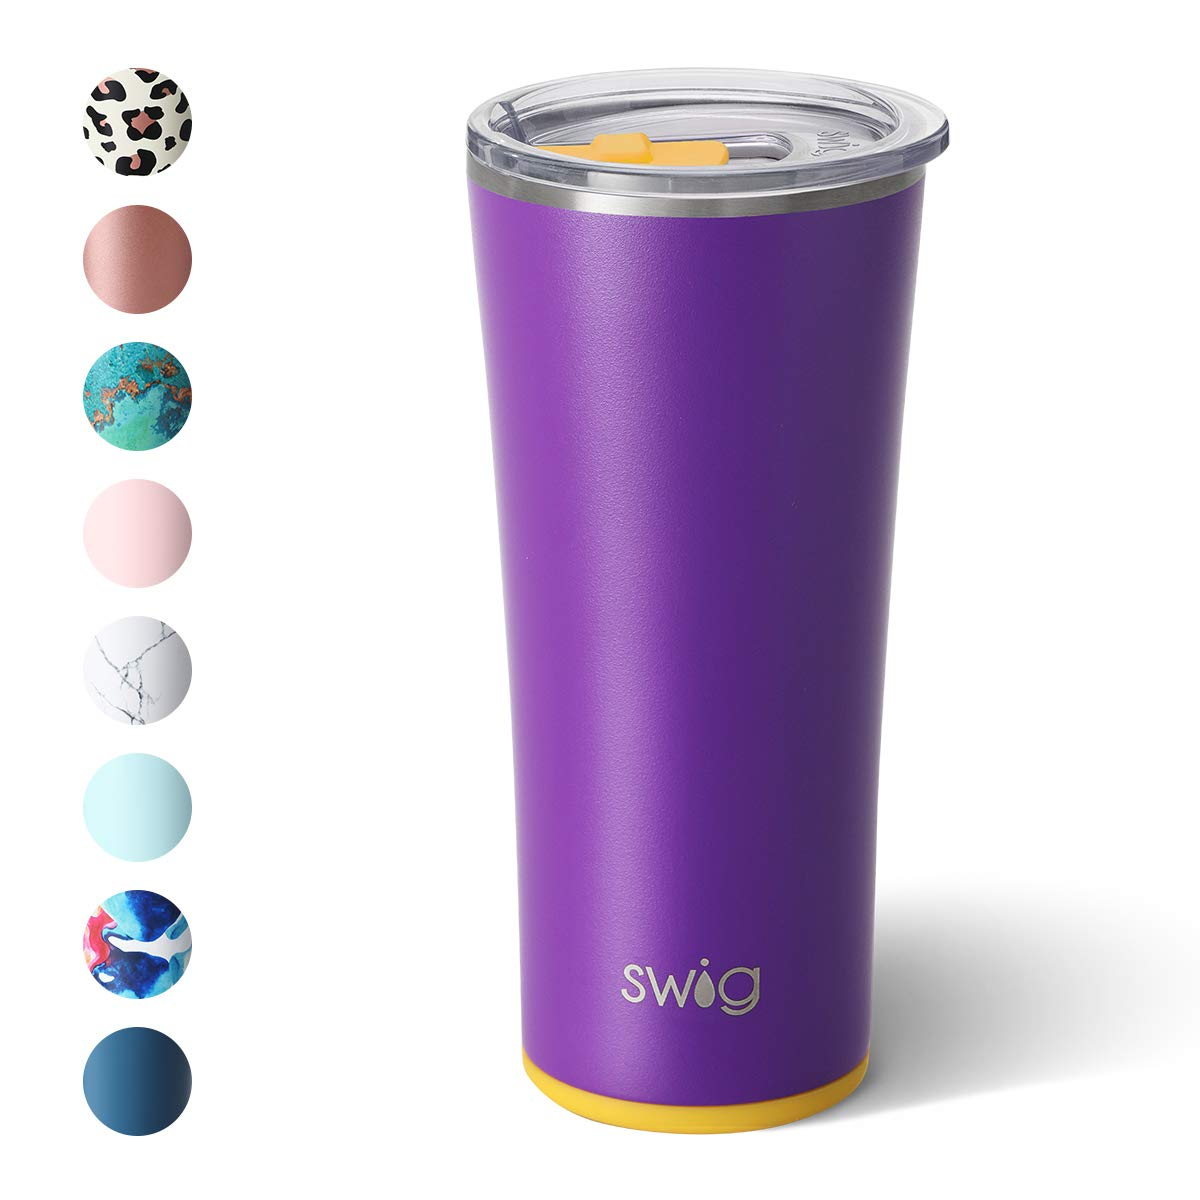 Swig Life 22oz Triple Insulated Stainless Steel Skinny Tumbler with Lid, Dishwasher Safe, Double Wall, Vacuum Sealed Travel Coffee Tumbler in Matte Purple/Yellow Print (Multiple Patterns Available)